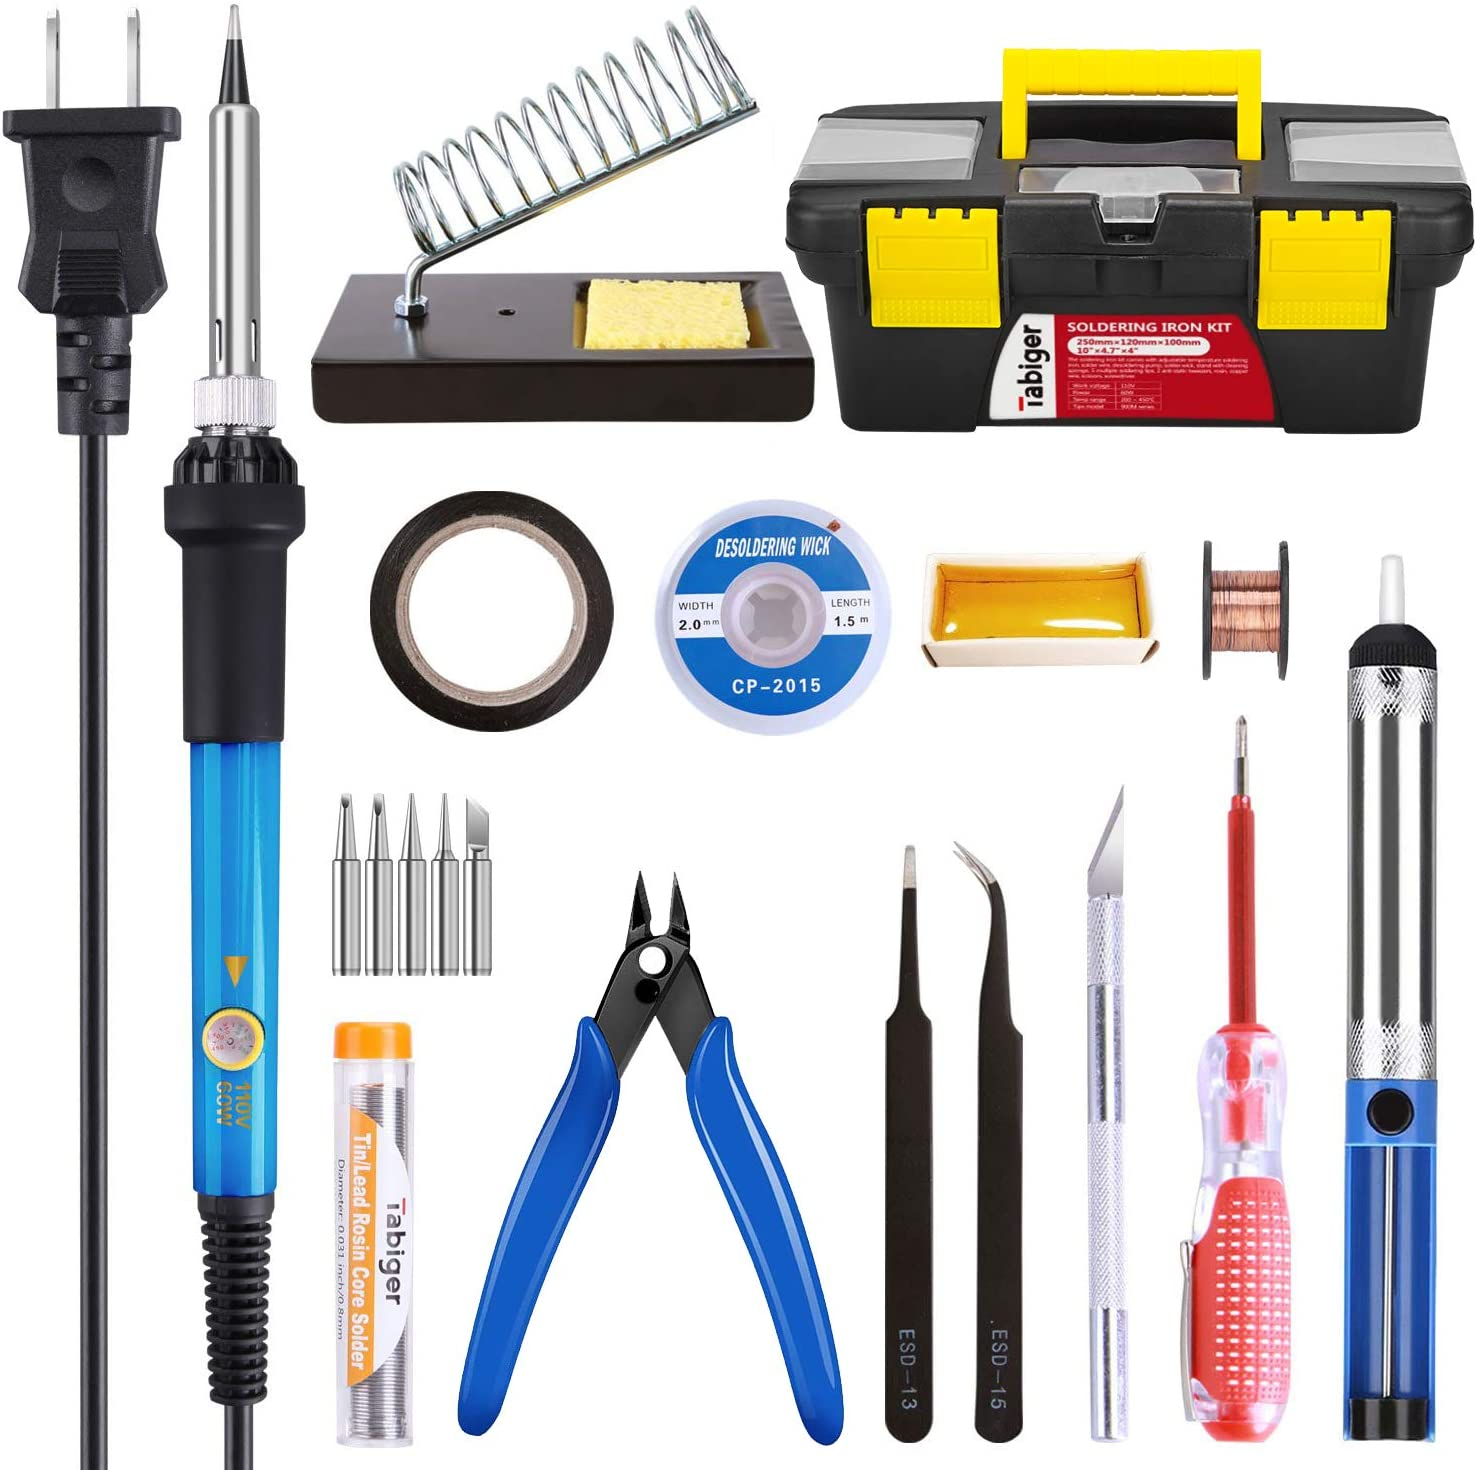 Amazon.com: Soldering Iron Kit Electronics 60W Adjustable Temperature Soldering  Iron, 5pcs Soldering Iron Tips, Solder, Rosin, Solder Wick, Stand and Other  Soldering Kits in Portable Toolbox: Home Improvement